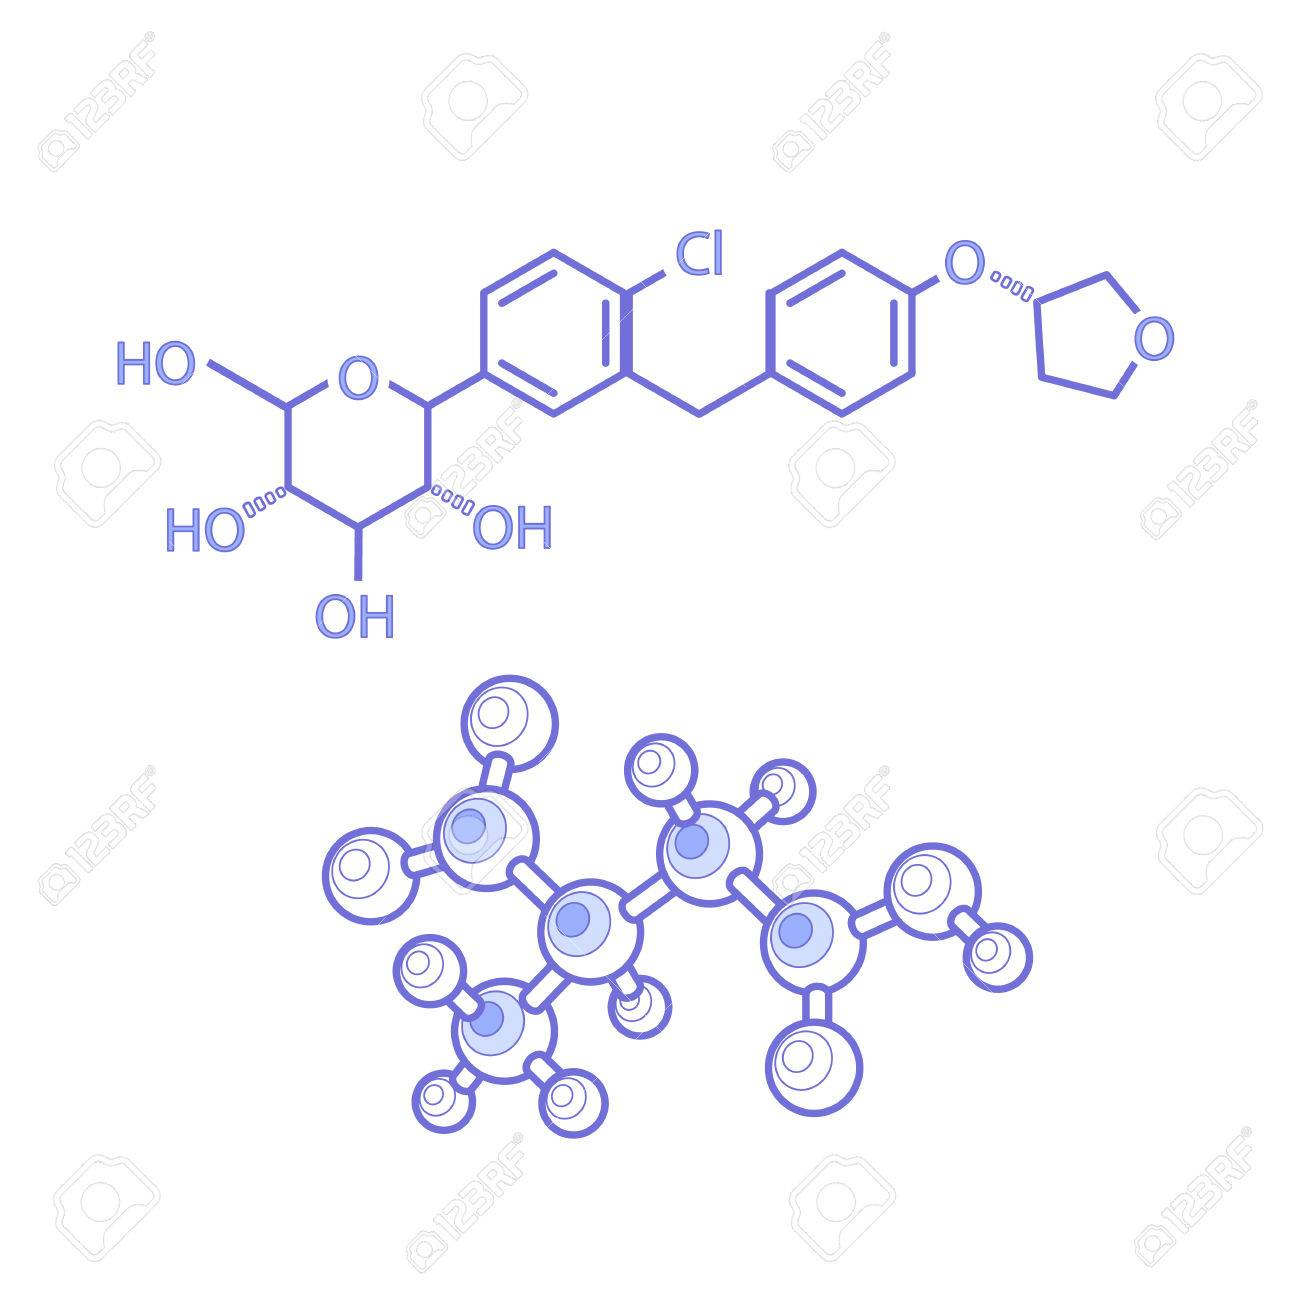 Diagram of the structures of molecules abstract lines amin small diagram of the structures of molecules abstract lines amin small colorful in vector the ccuart Images